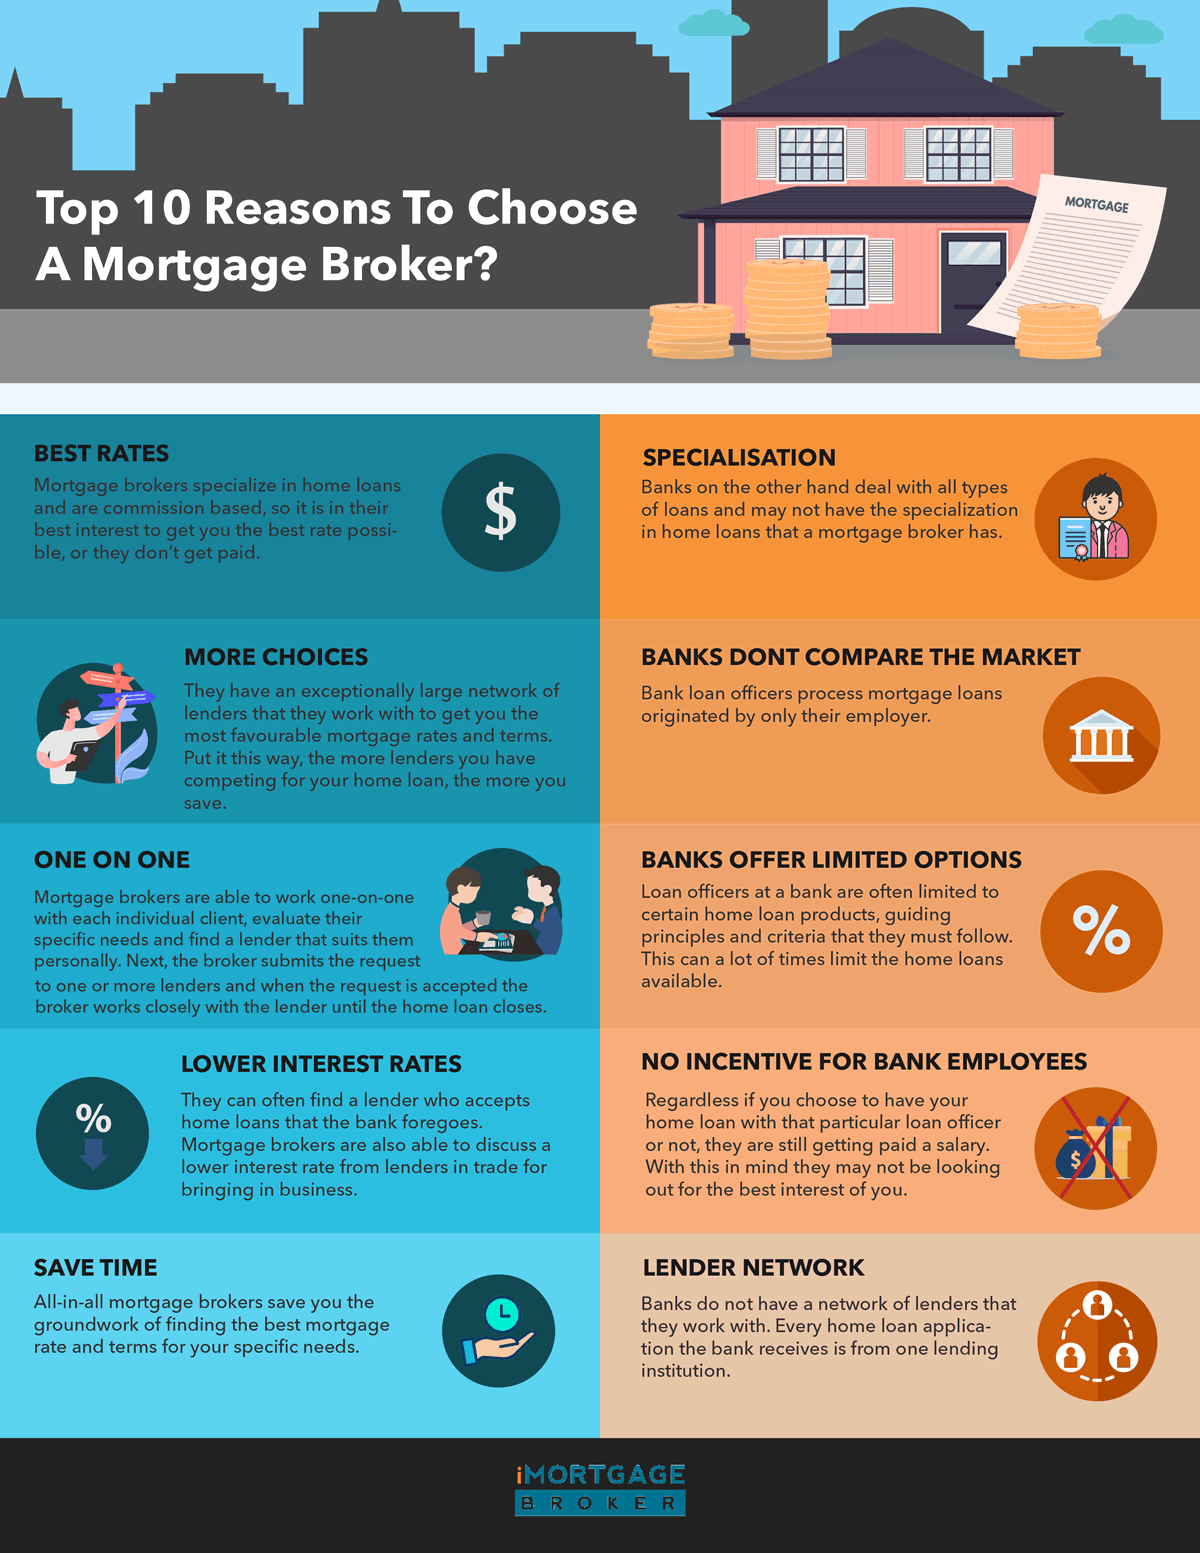 Top 10 Reasons To Choose A Mortgage Broker